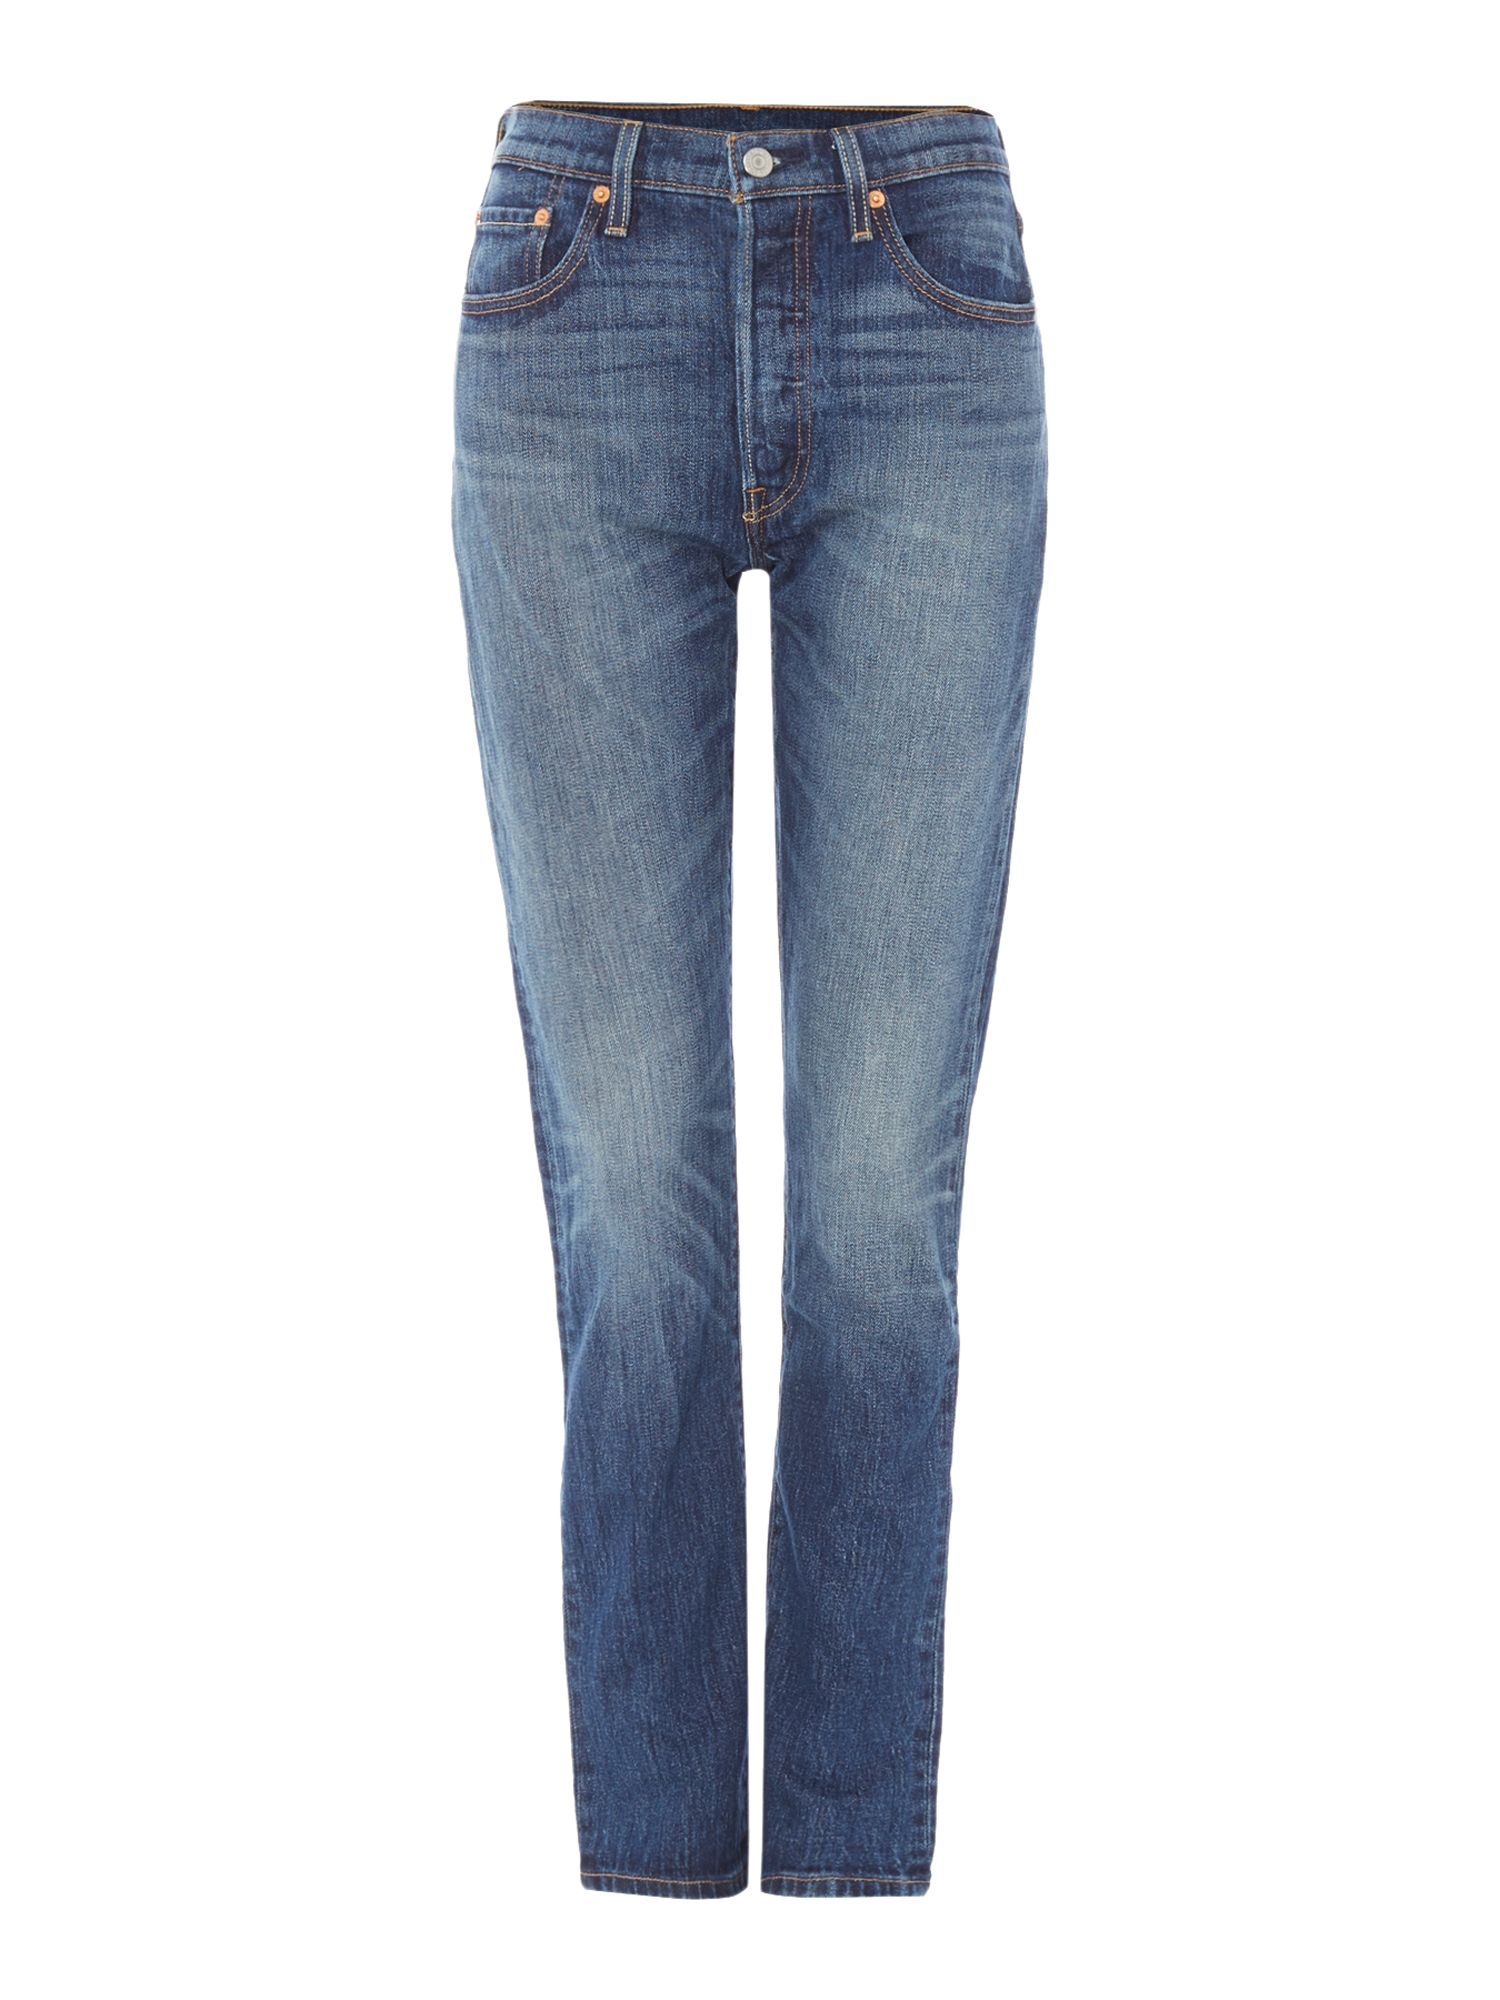 Levis 501 Exclusive Skinny In Supercharger, Denim Mid Wash